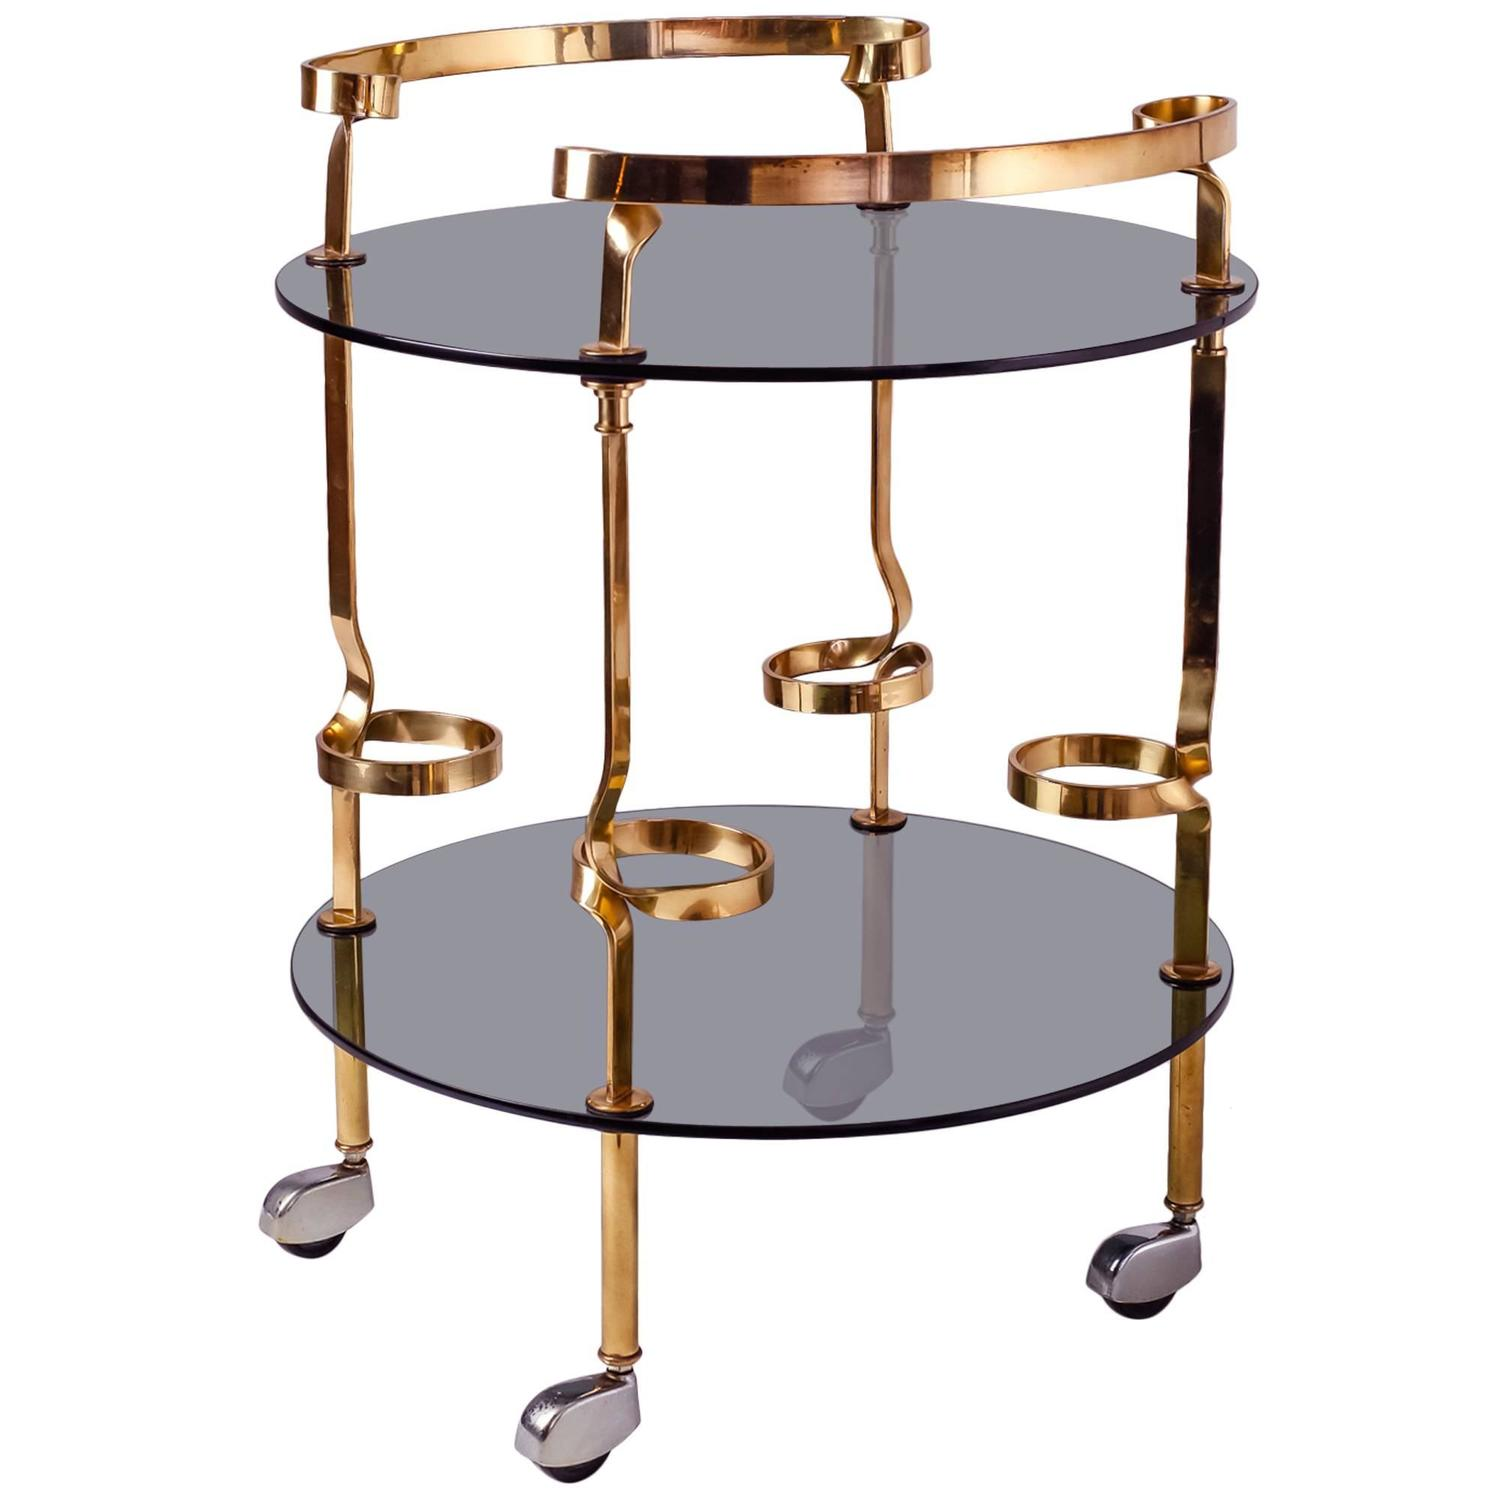 glass and brass bar cart italy 1950s at 1stdibs. Black Bedroom Furniture Sets. Home Design Ideas